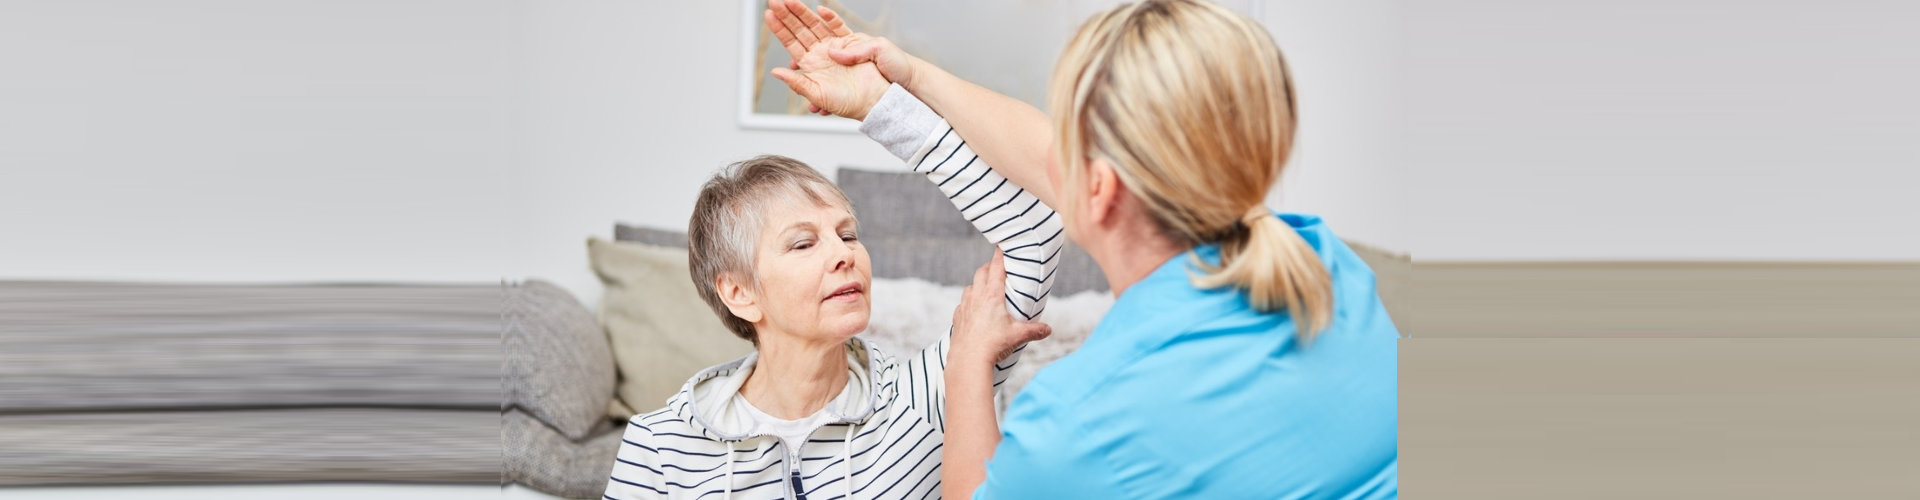 physical therapist assisting senior woman on his therapy